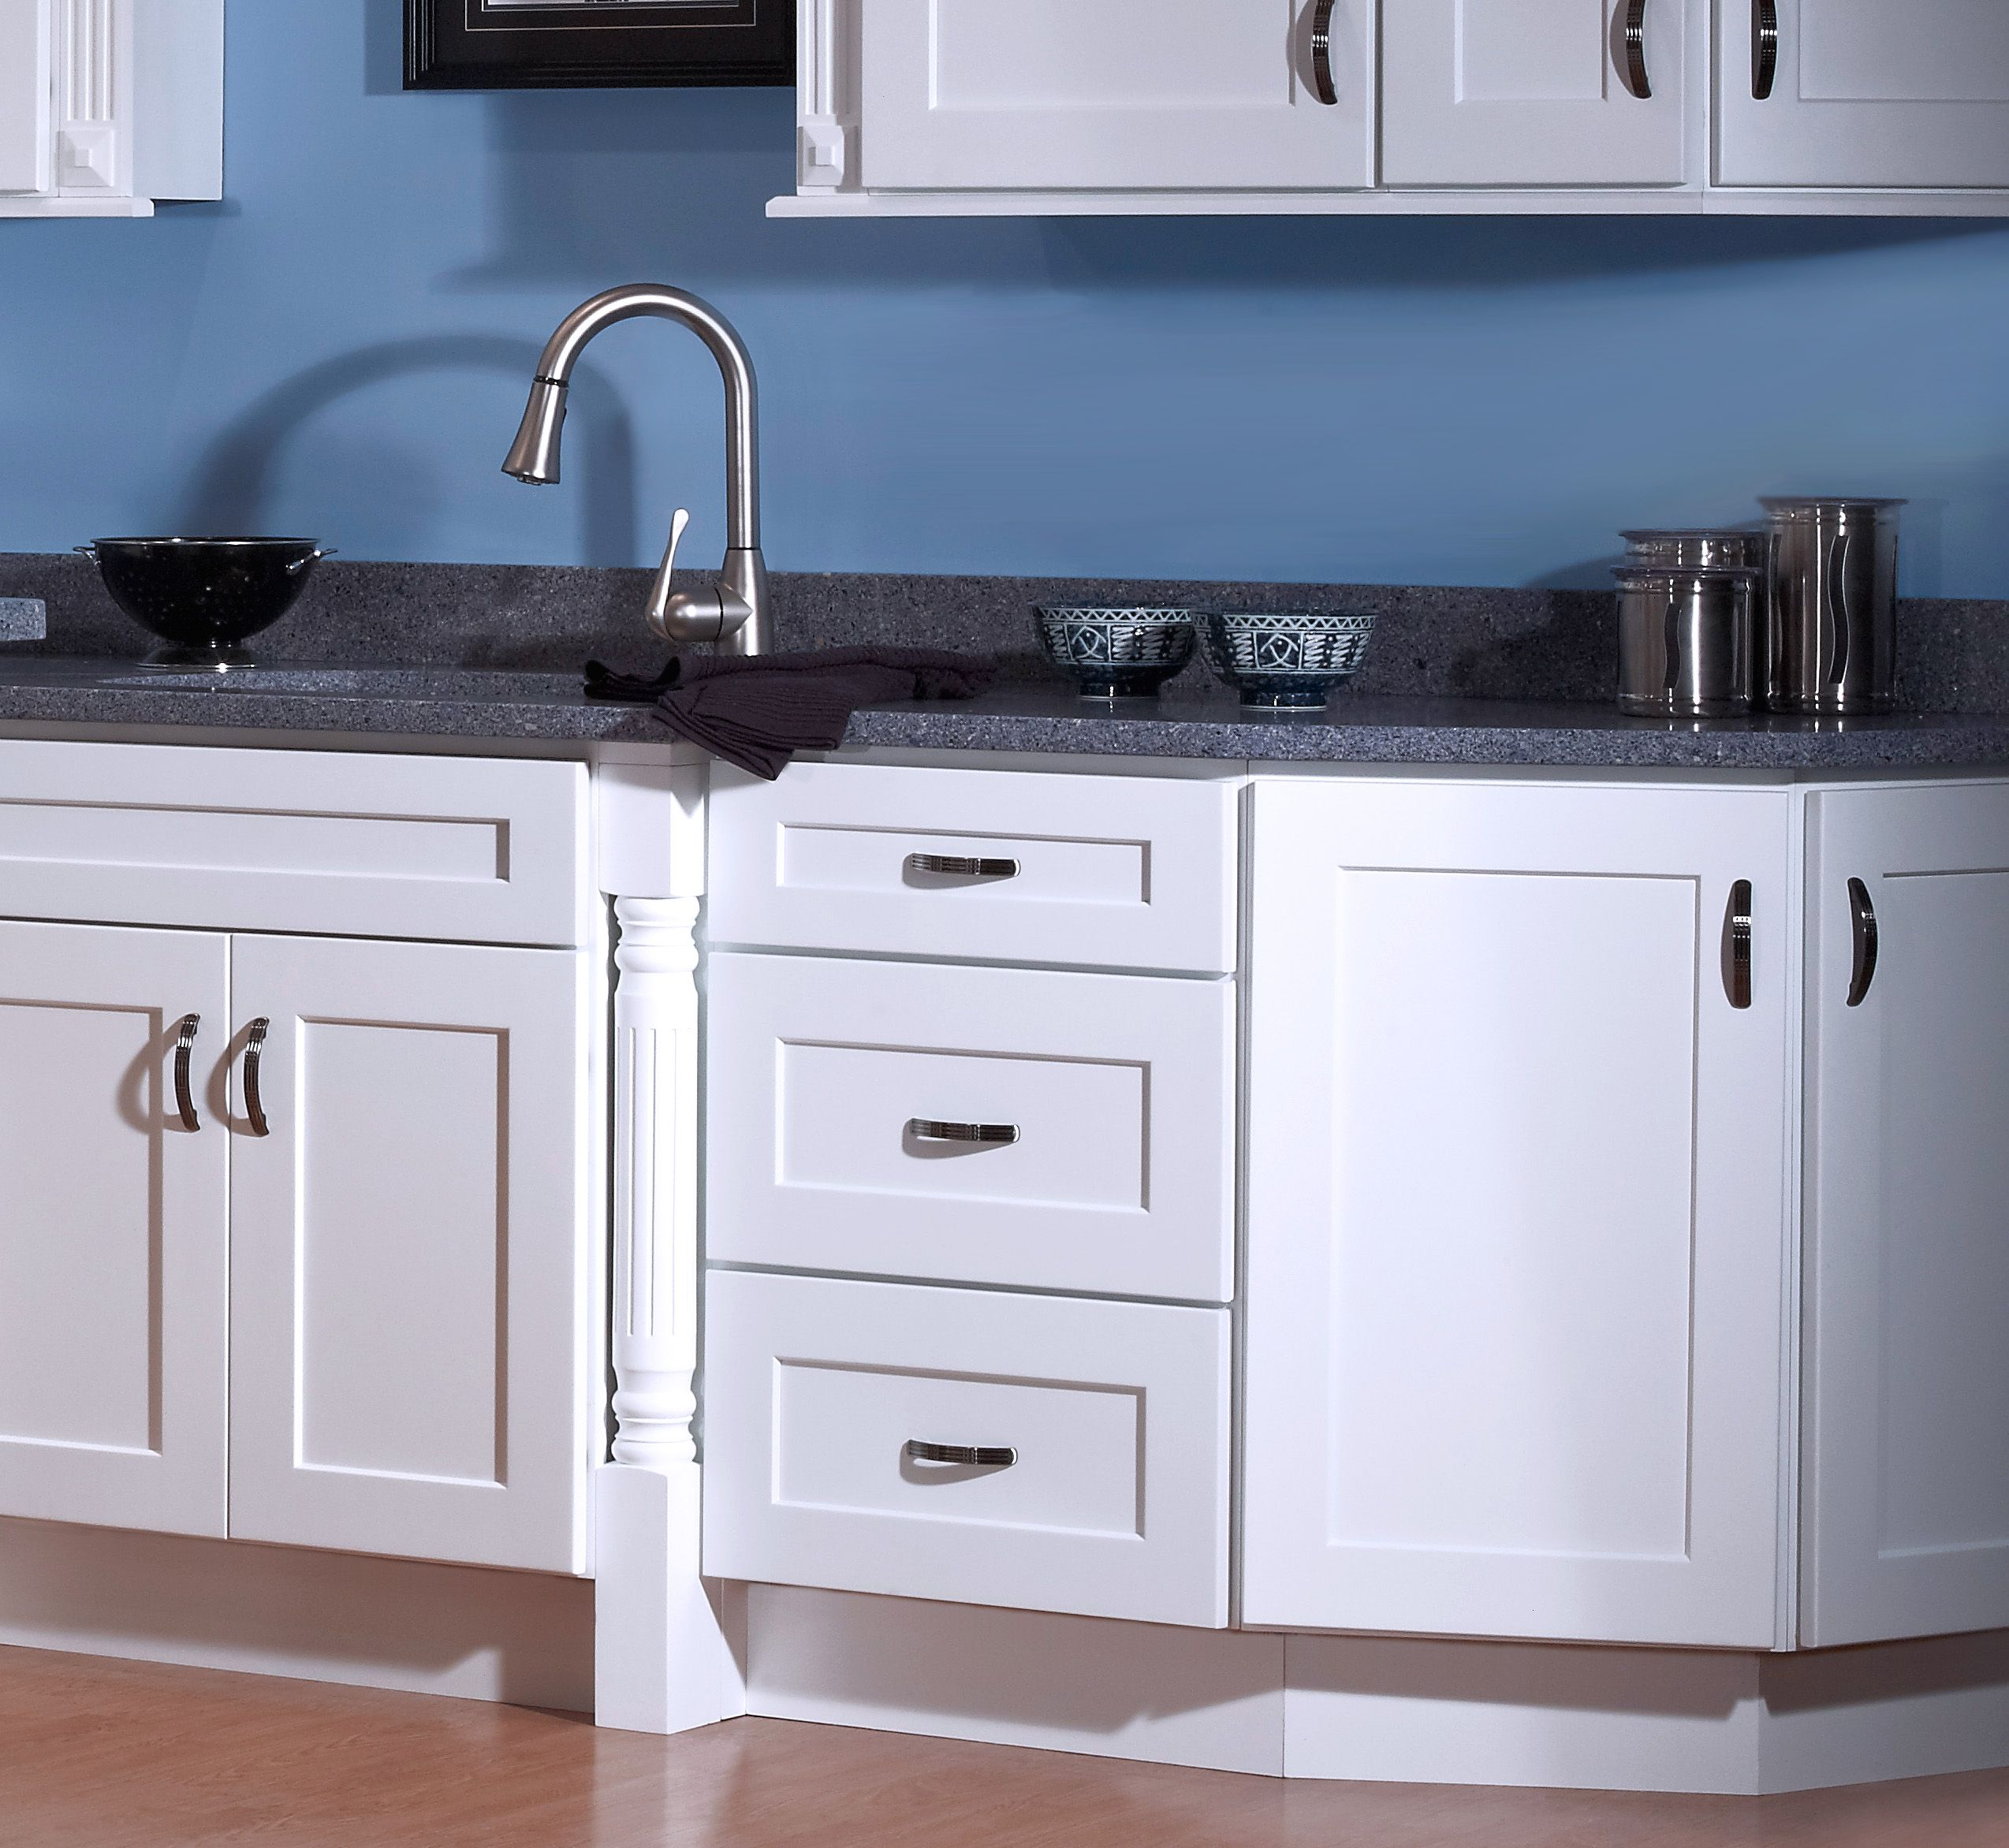 Get clean look w/ Dover White Shaker RTA Cabinets | For the Home ...